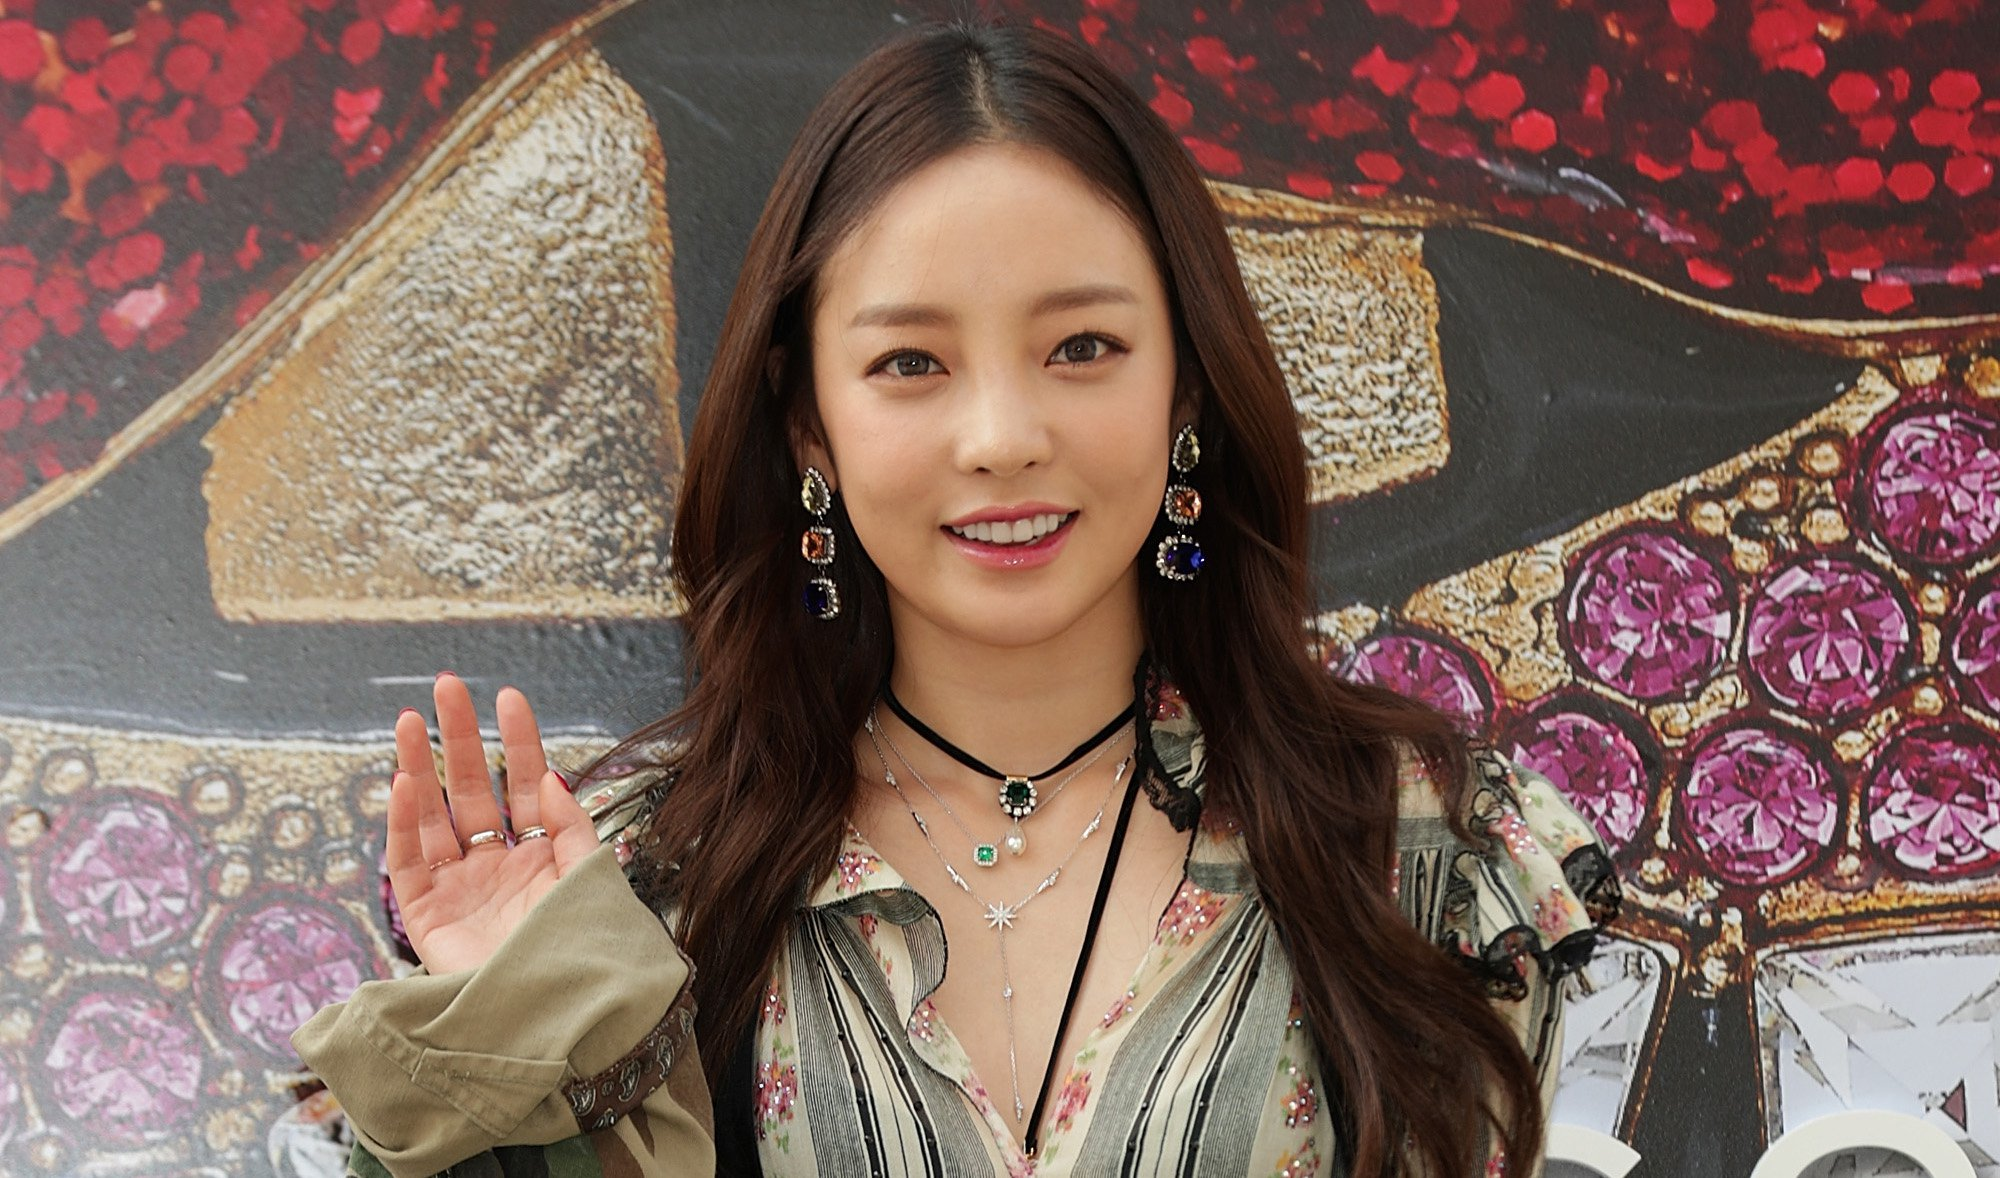 SEOUL, SOUTH KOREA - MARCH 24: Former member of South Korean girl group KARA, Hara attends the photo call for 'Marc Jacobs' at Galleria Department Store on March 24, 2017 in Seoul, South Korea. (Photo by Han Myung-Gu/WireImage)